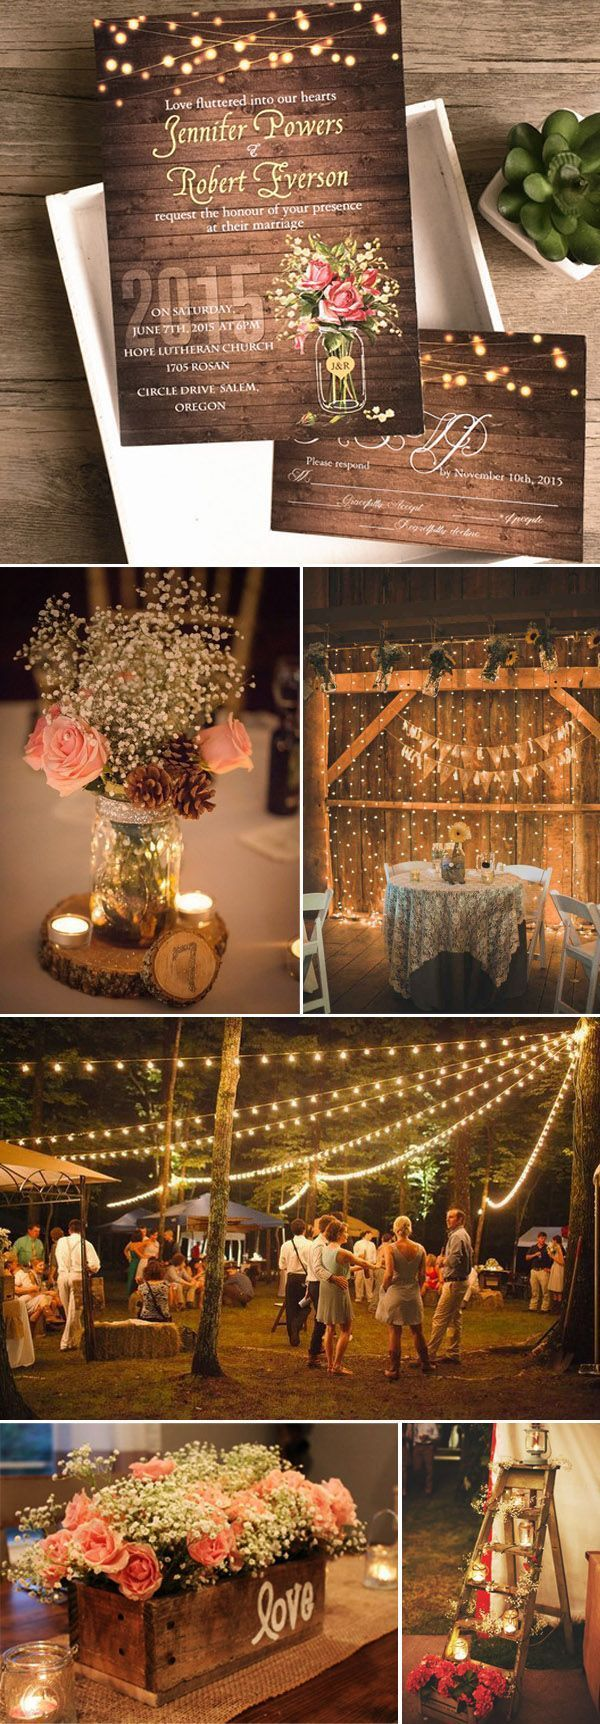 Best 25 summer wedding inspiration ideas on pinterest summer country rustic wedding invitations for spring 2016 inspired by mason jars and string lights junglespirit Gallery